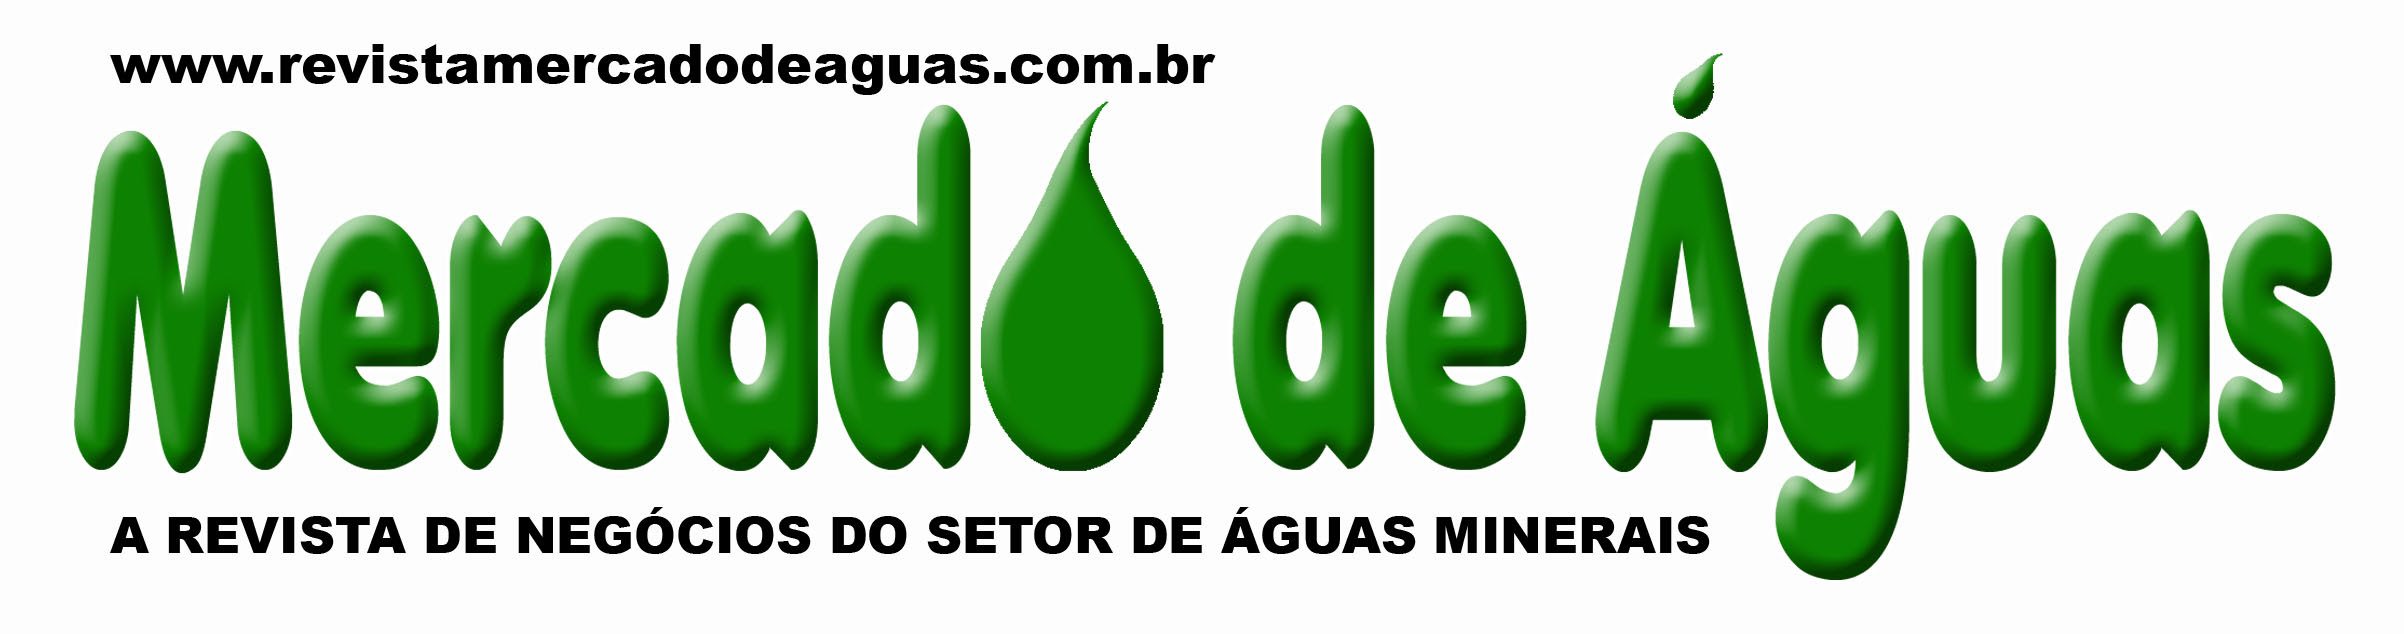 Revista Mercado de Águas